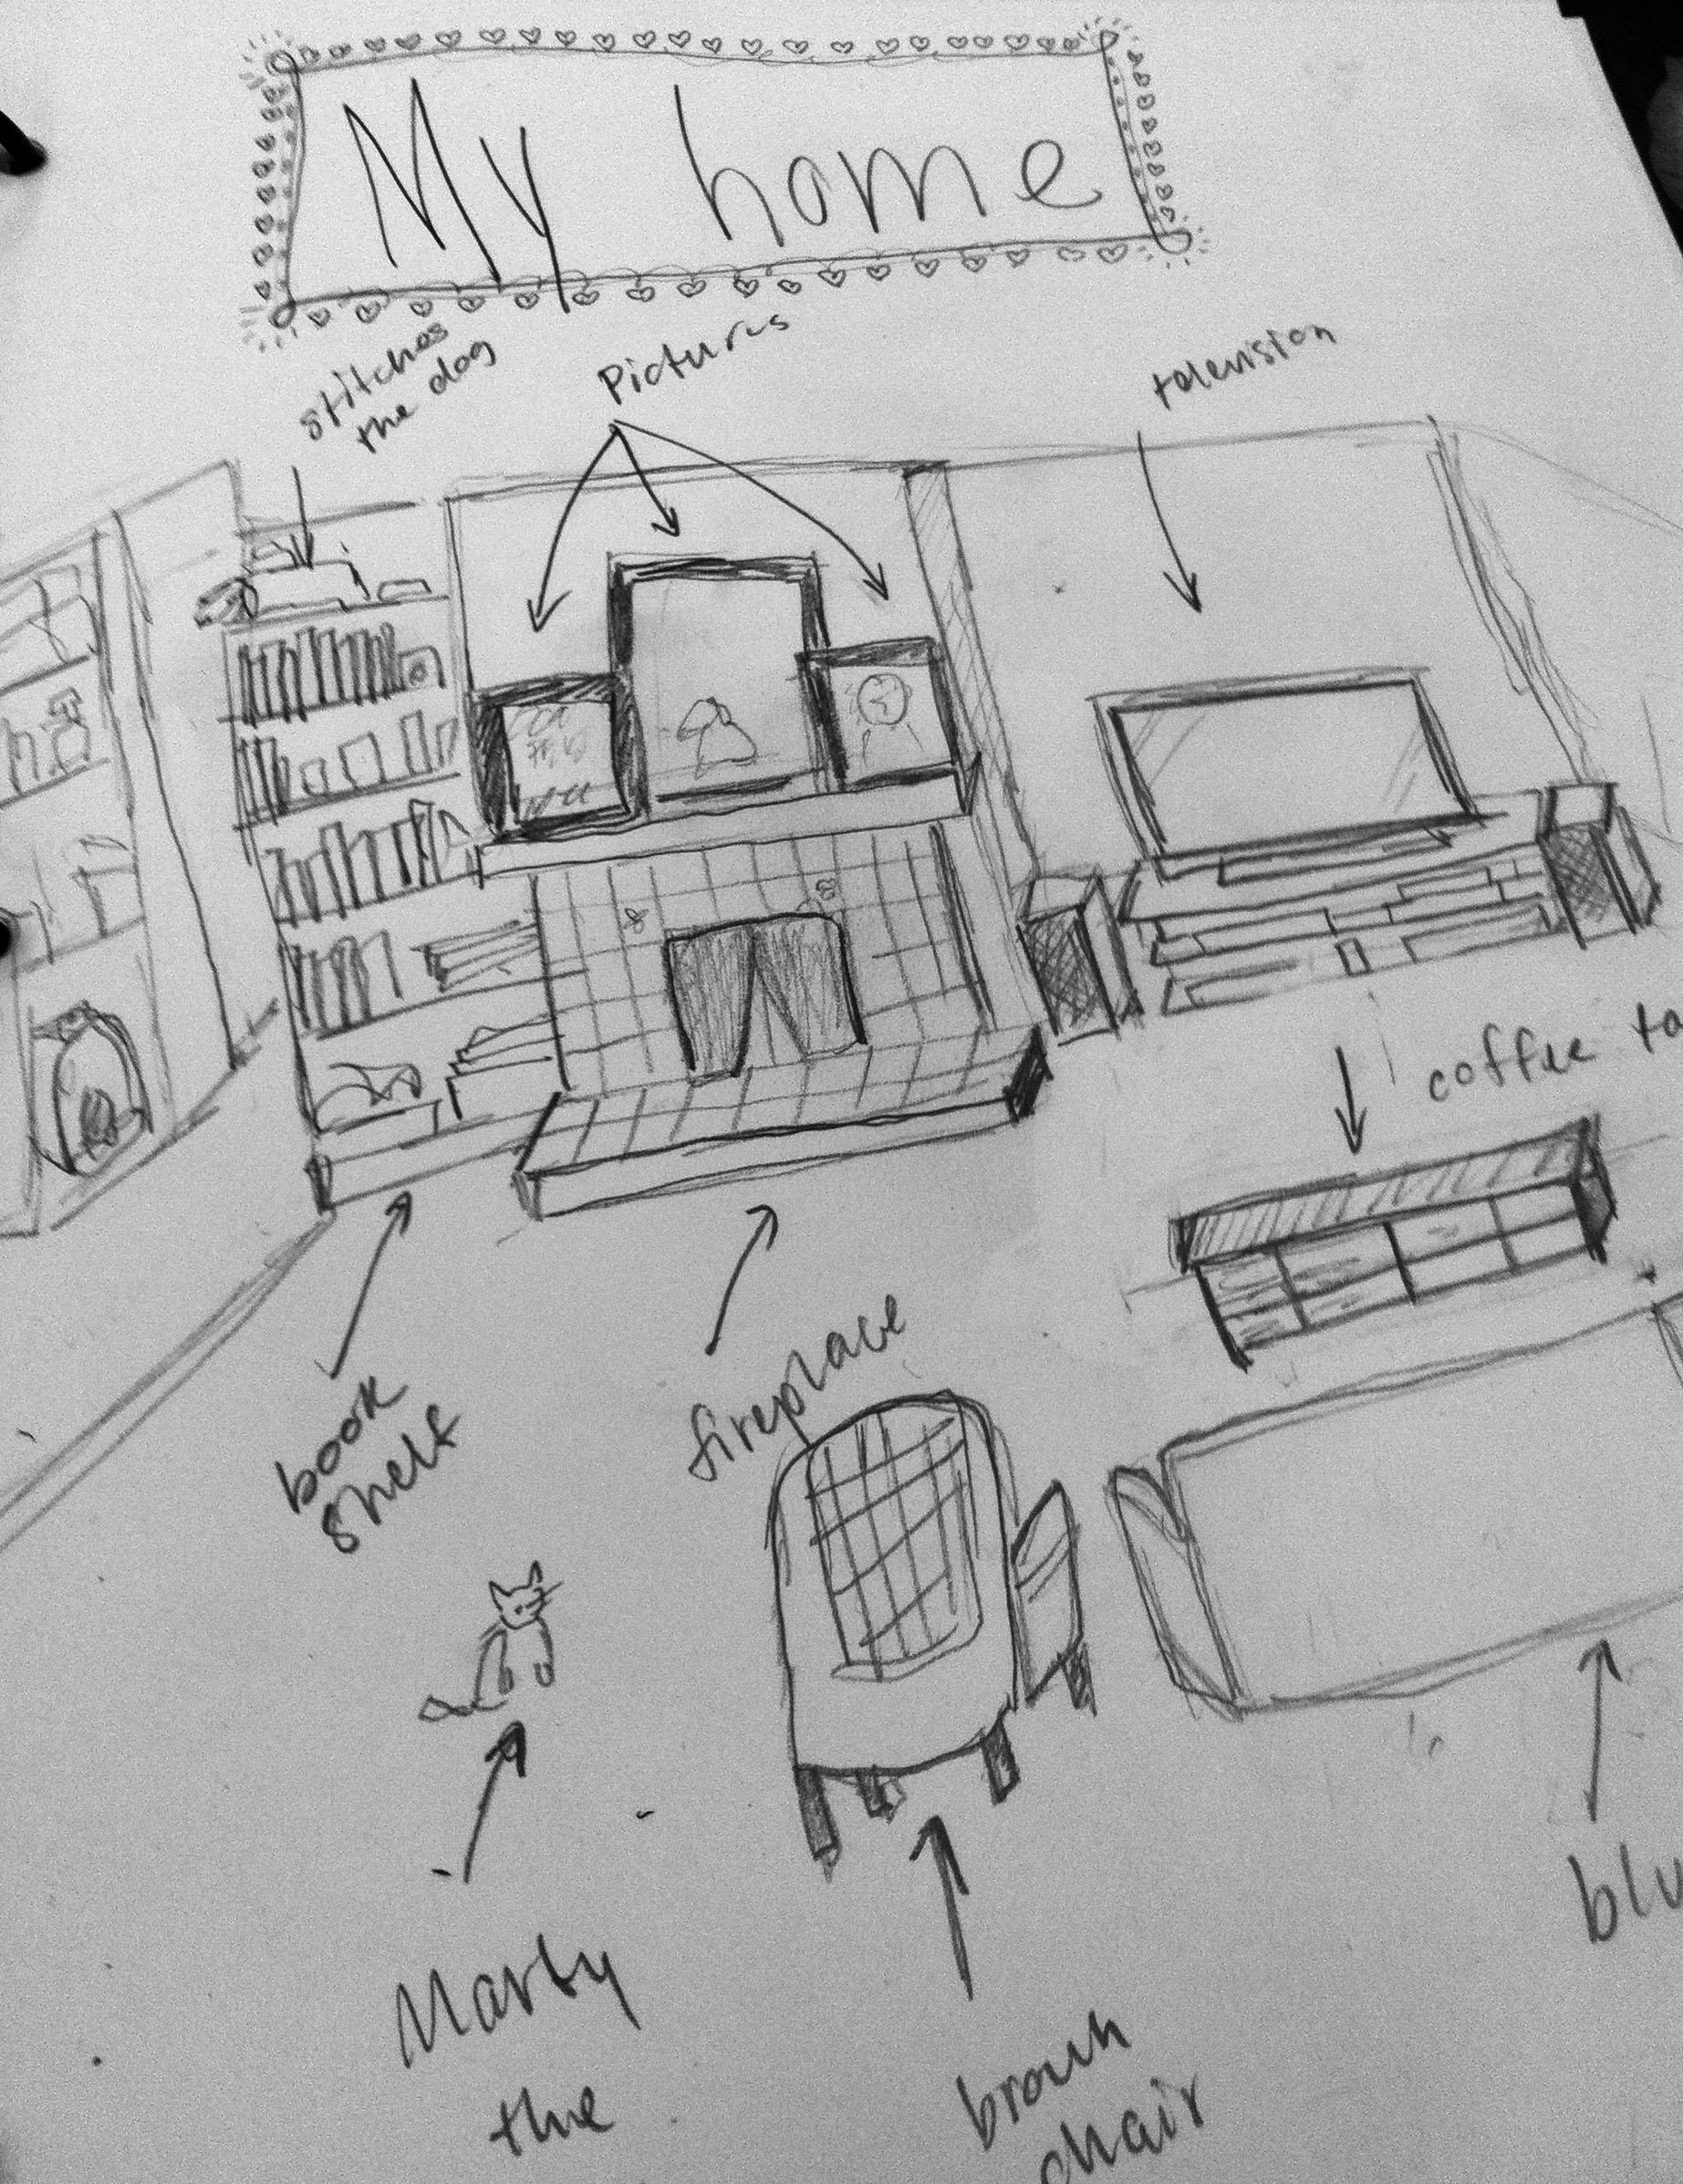 Mapping the heart through homes - image 2 - student project